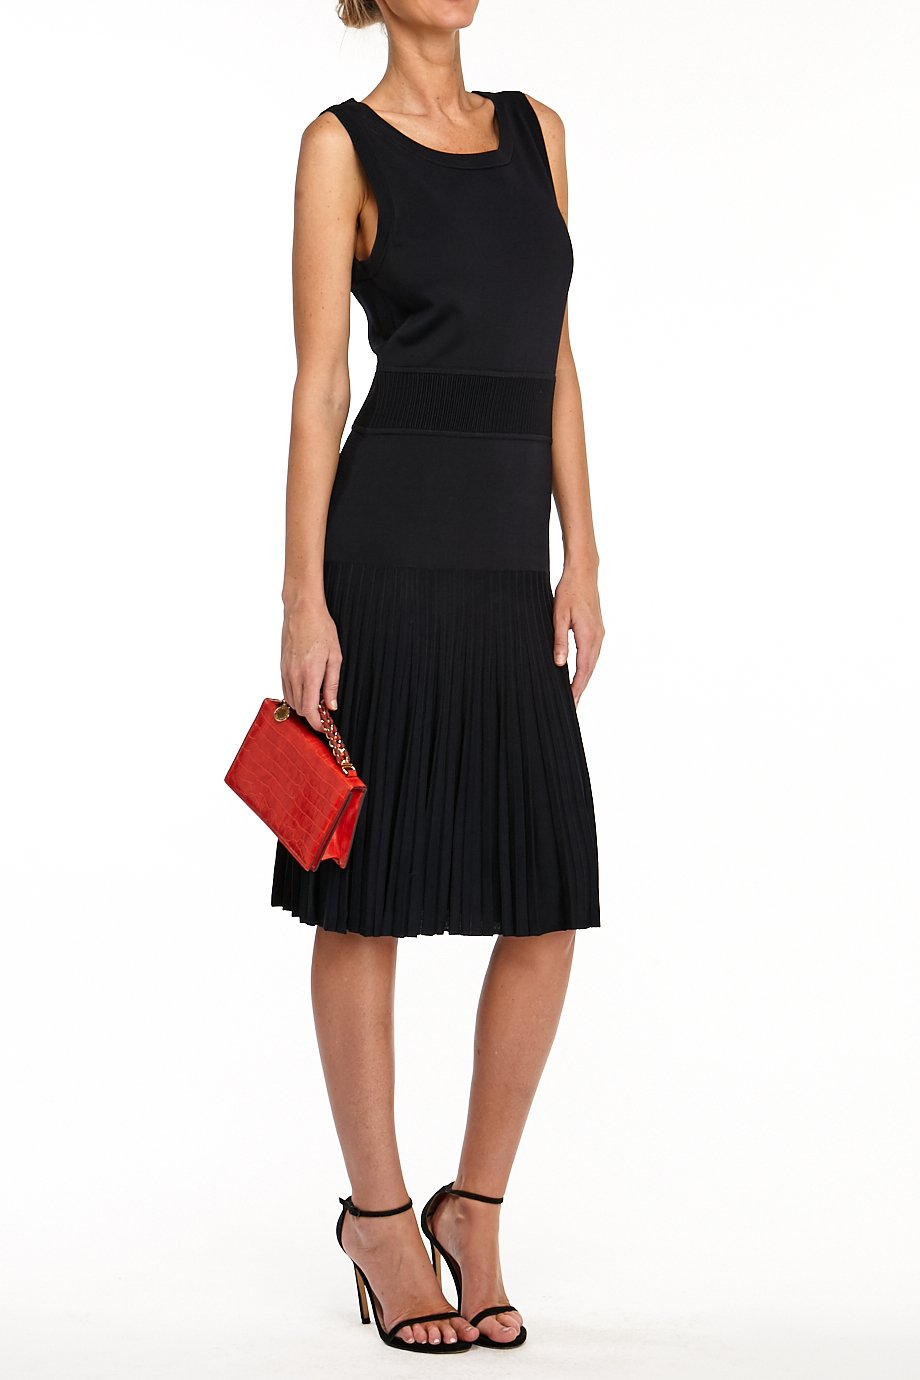 Carolina Herrera  Sleeveless navy blue pleated cocktail dress